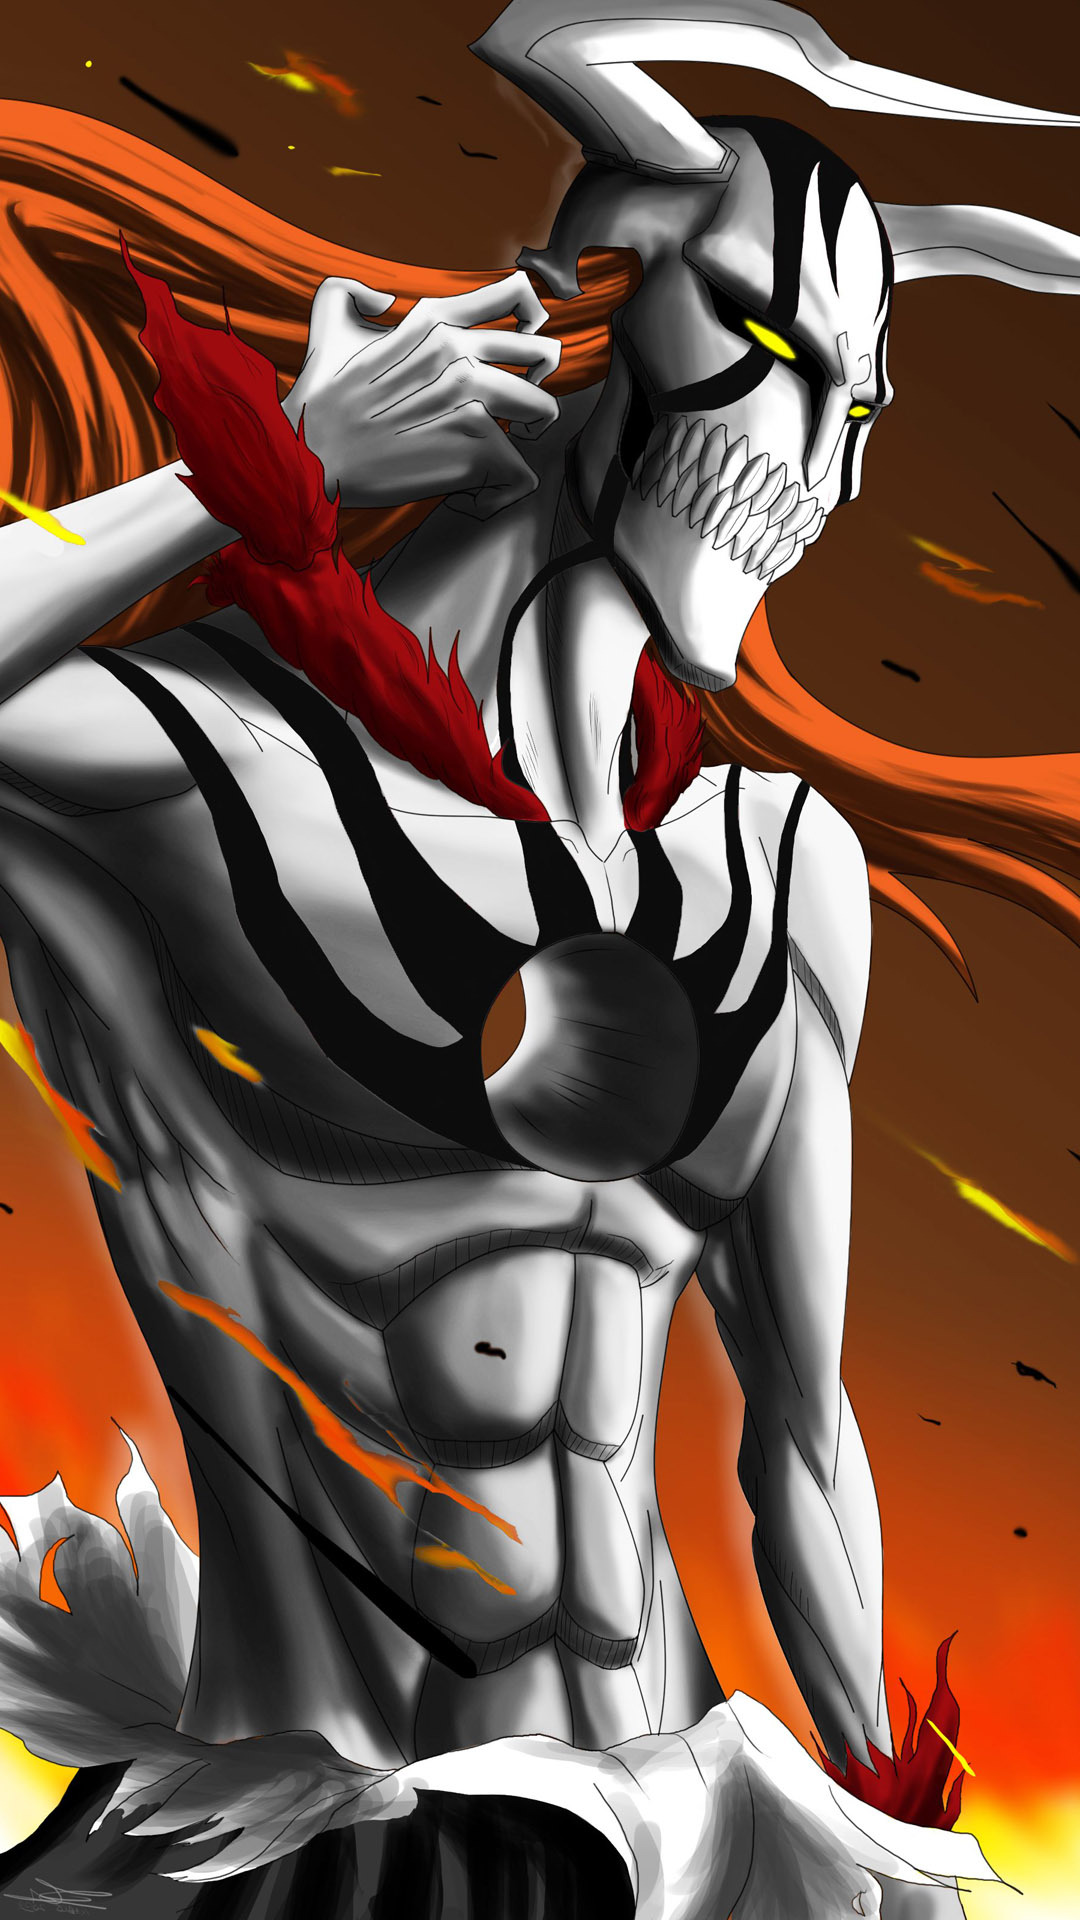 Bleach iPhone Widescreen Wallpaper. Anime wallpaper